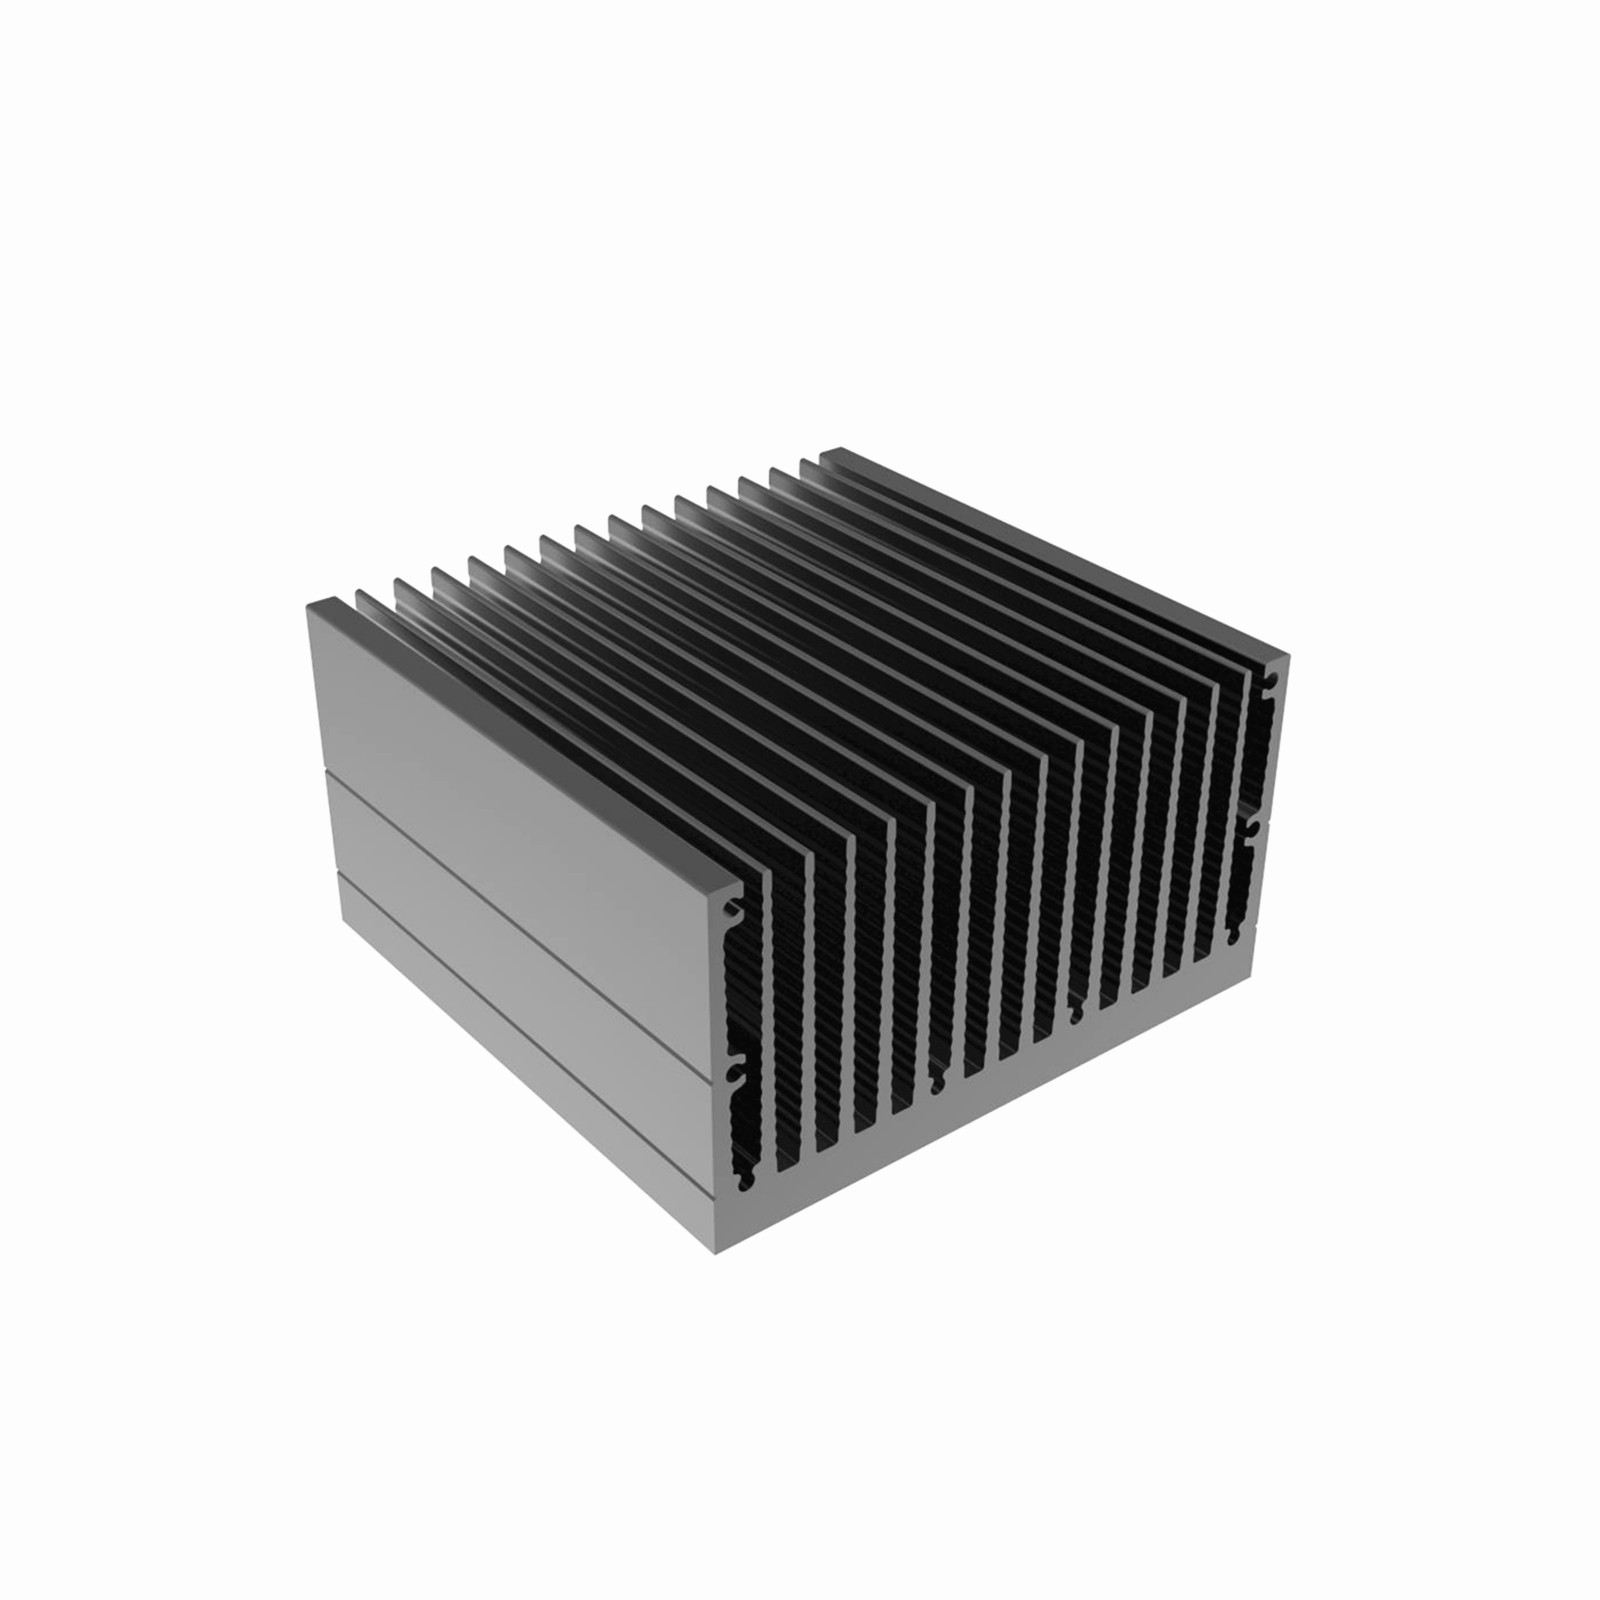 Mingfa Tech-Professional Metal Heat Sink Aluminum Heat Sink Enclosure Supplier